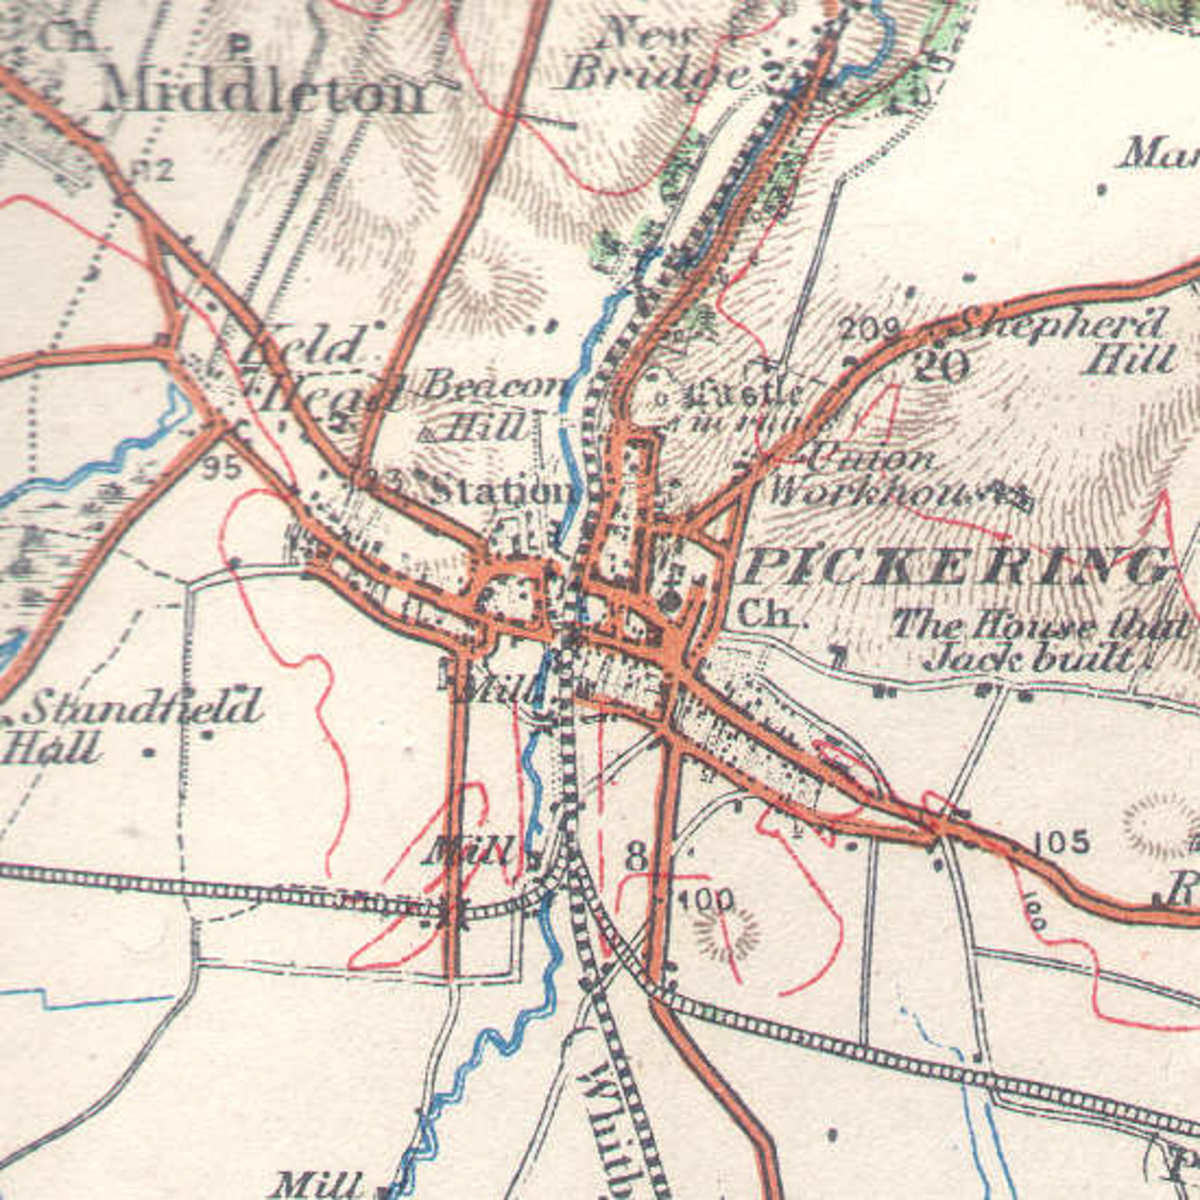 Pickering railways, 1914 map shows the routes south from the station. To the west was Helmsley; south was Rillington Junction for Malton and York; east was the Forge Valley line to Seamer and Scarborough